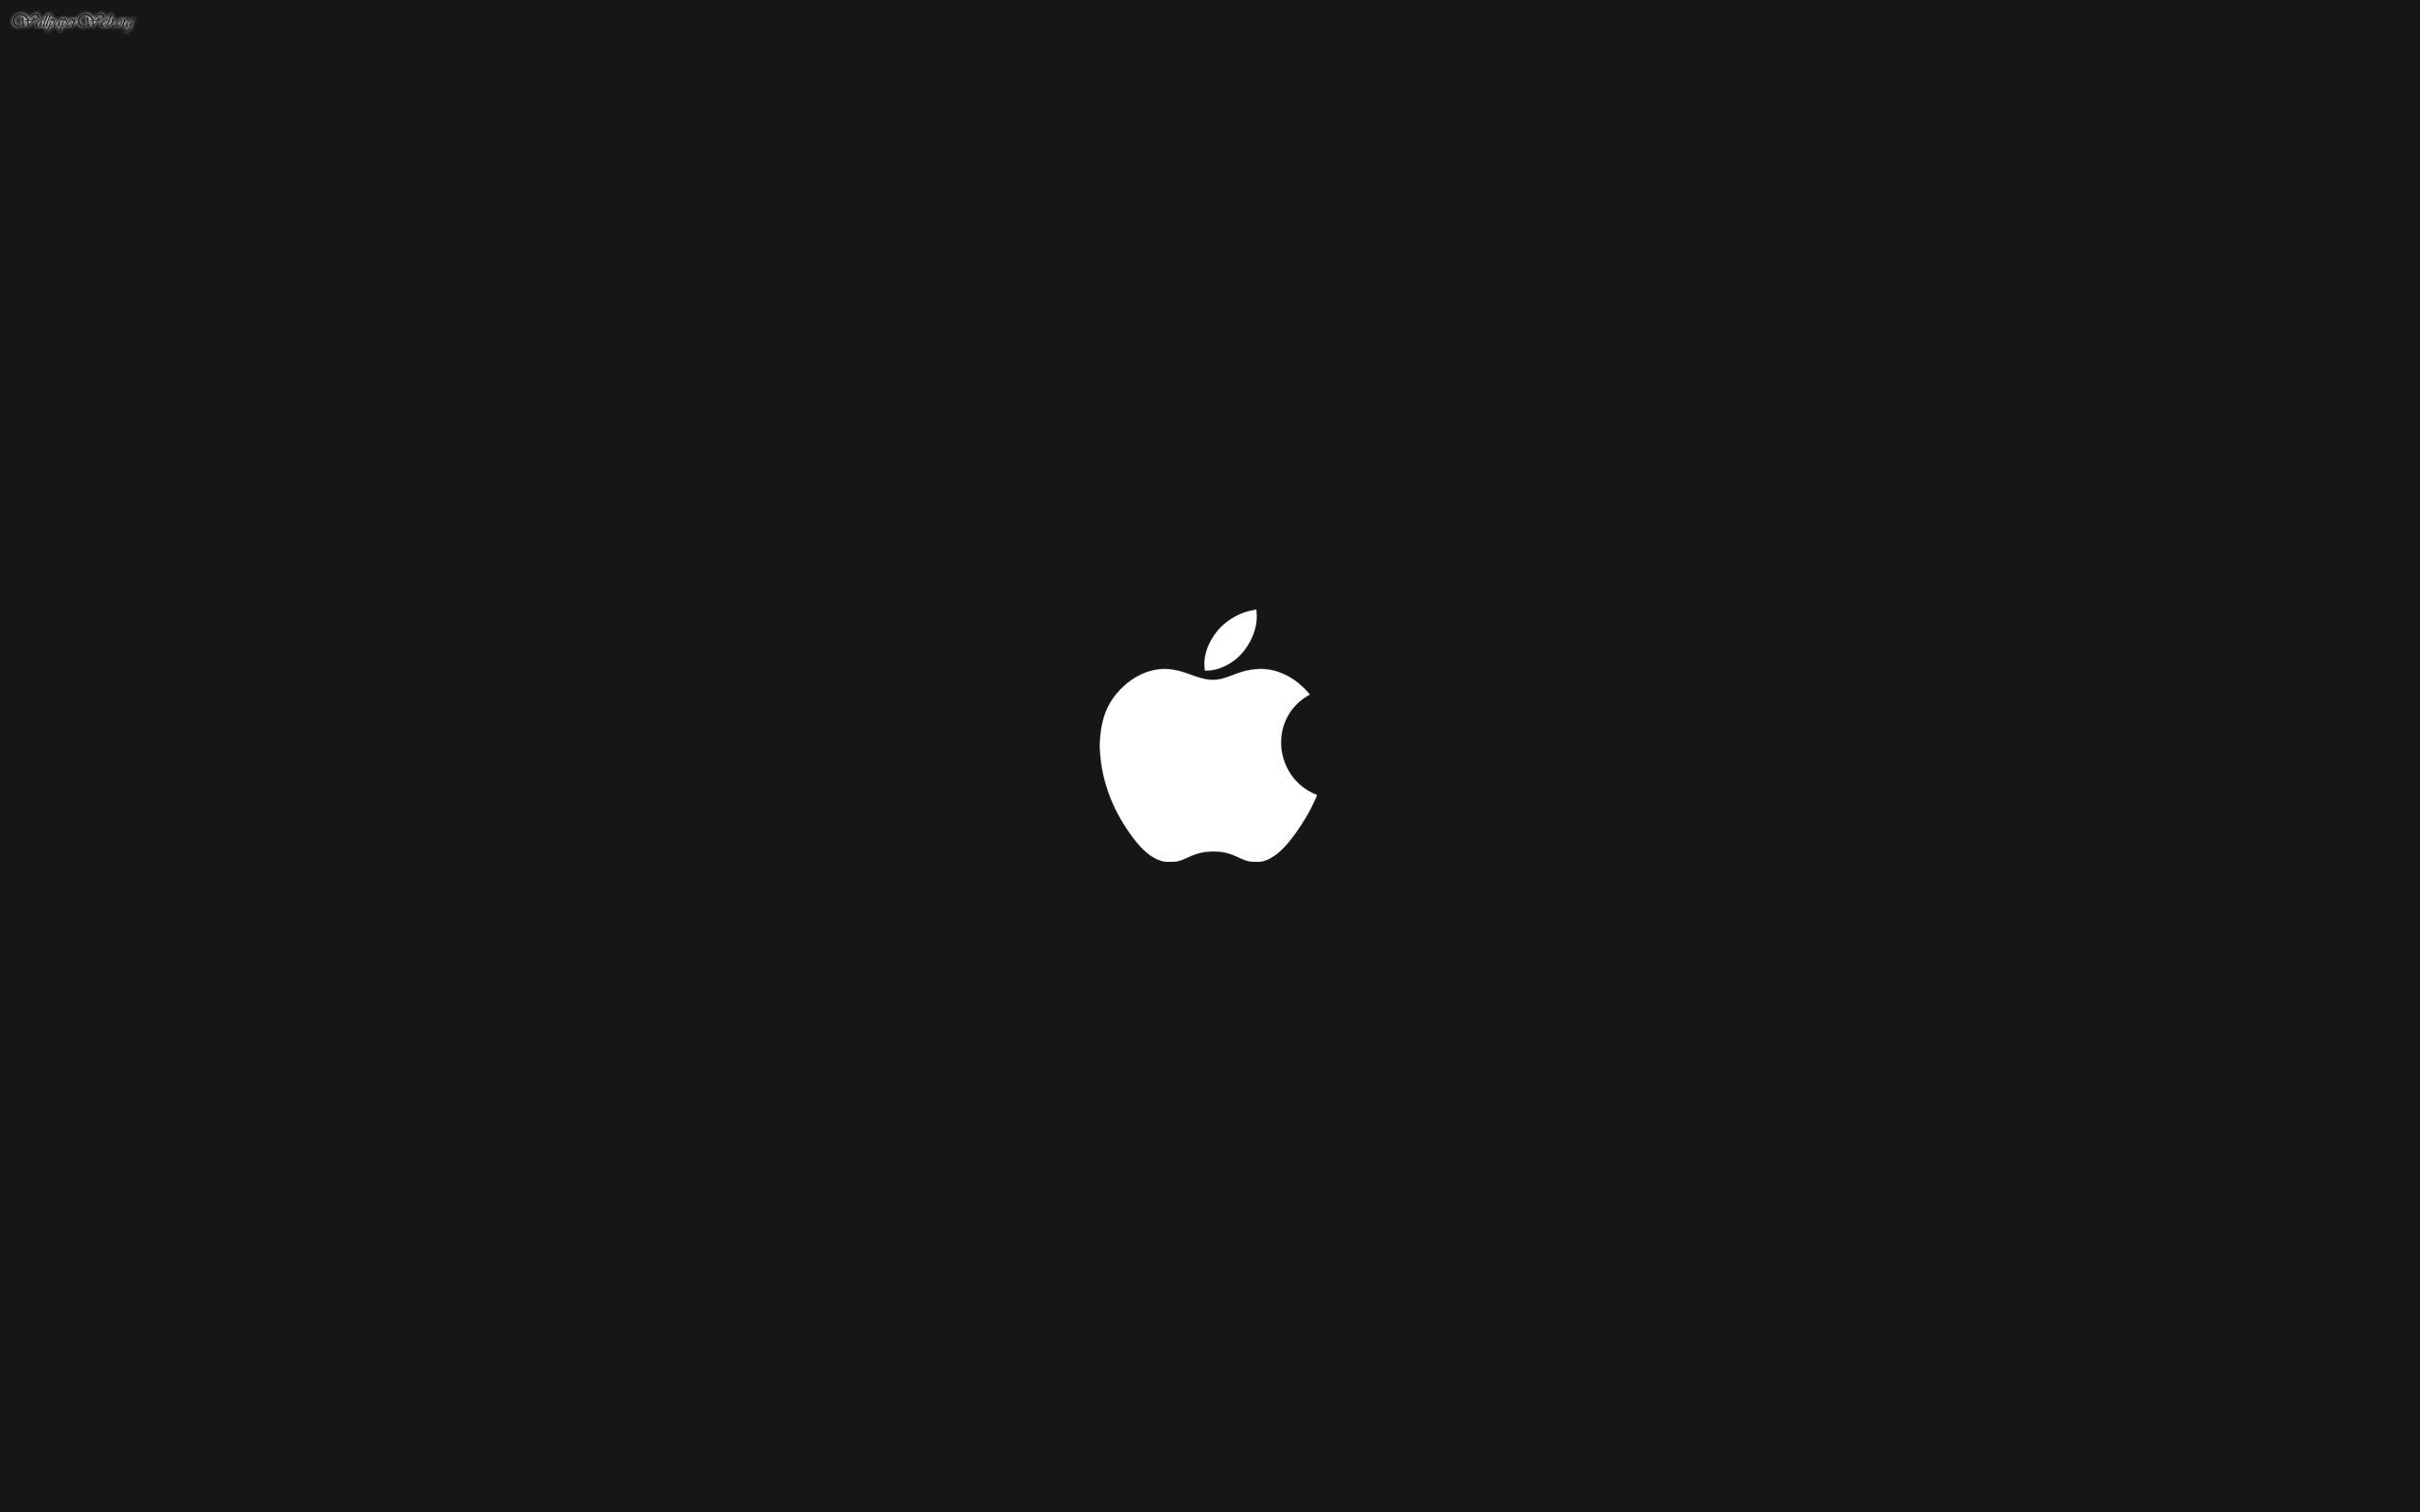 Apple Logo black Computer 2560x1600